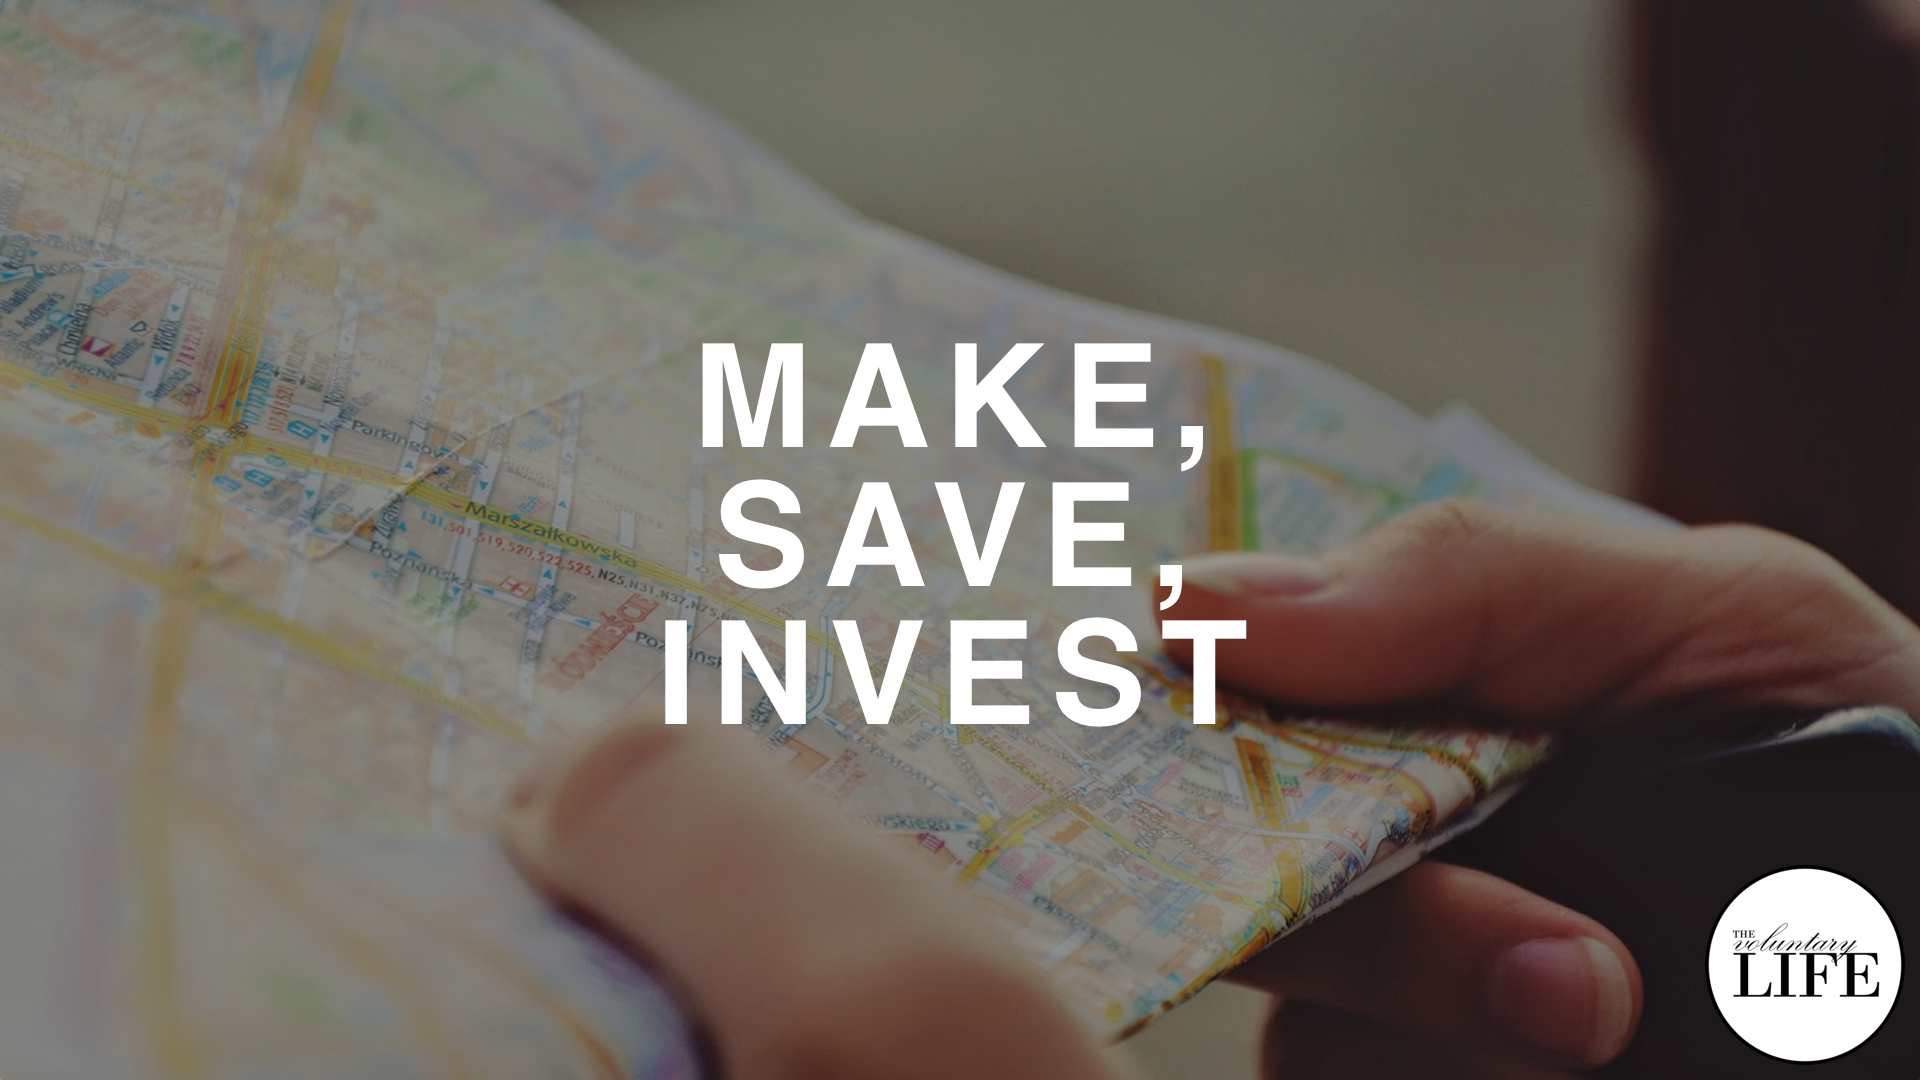 182 Financial Independence Part 2: Make, Save, Invest